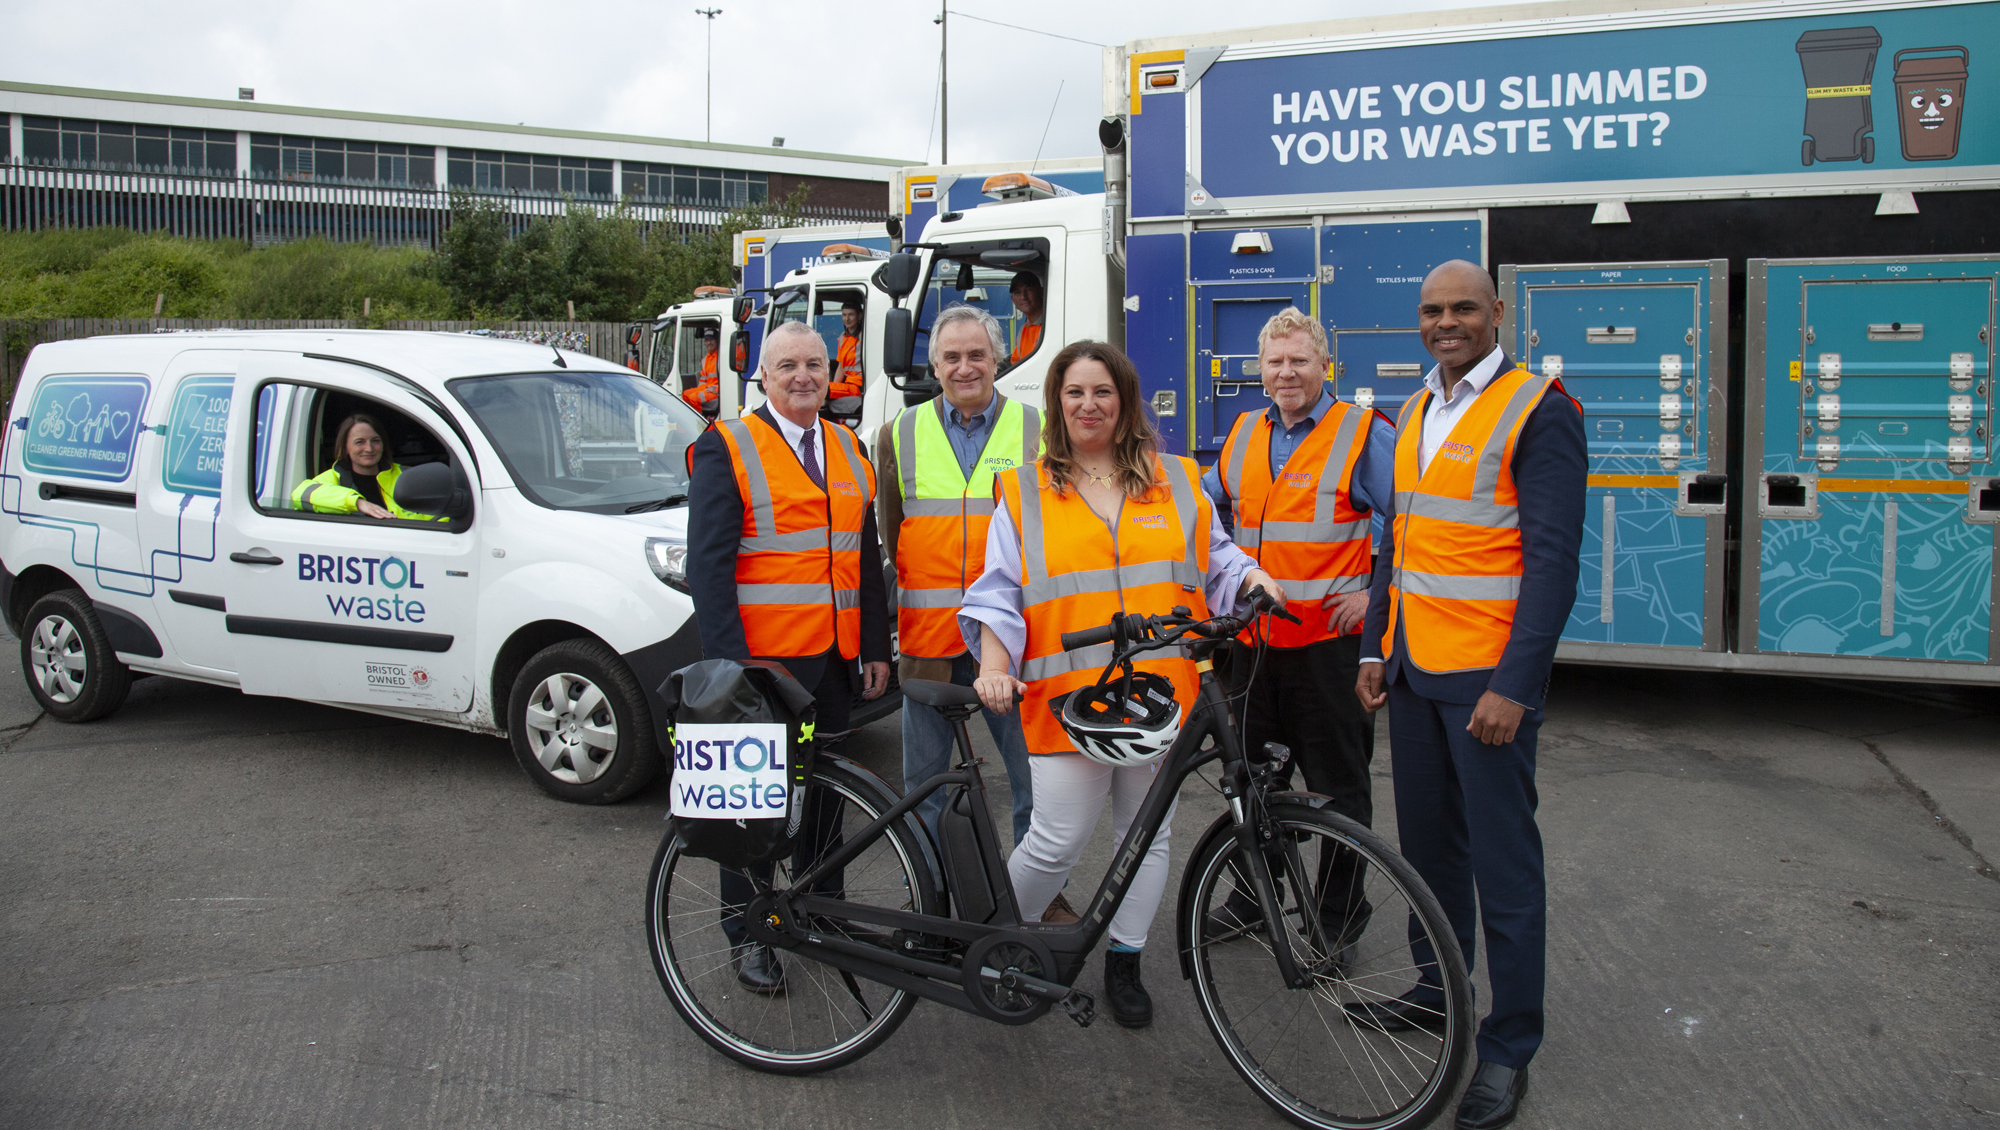 Bristol Waste Recycling Vehicle Launch 2019 Tony Lawless Steve Pearce Emma Russell Iain Fortune Marvin Rees.jpg